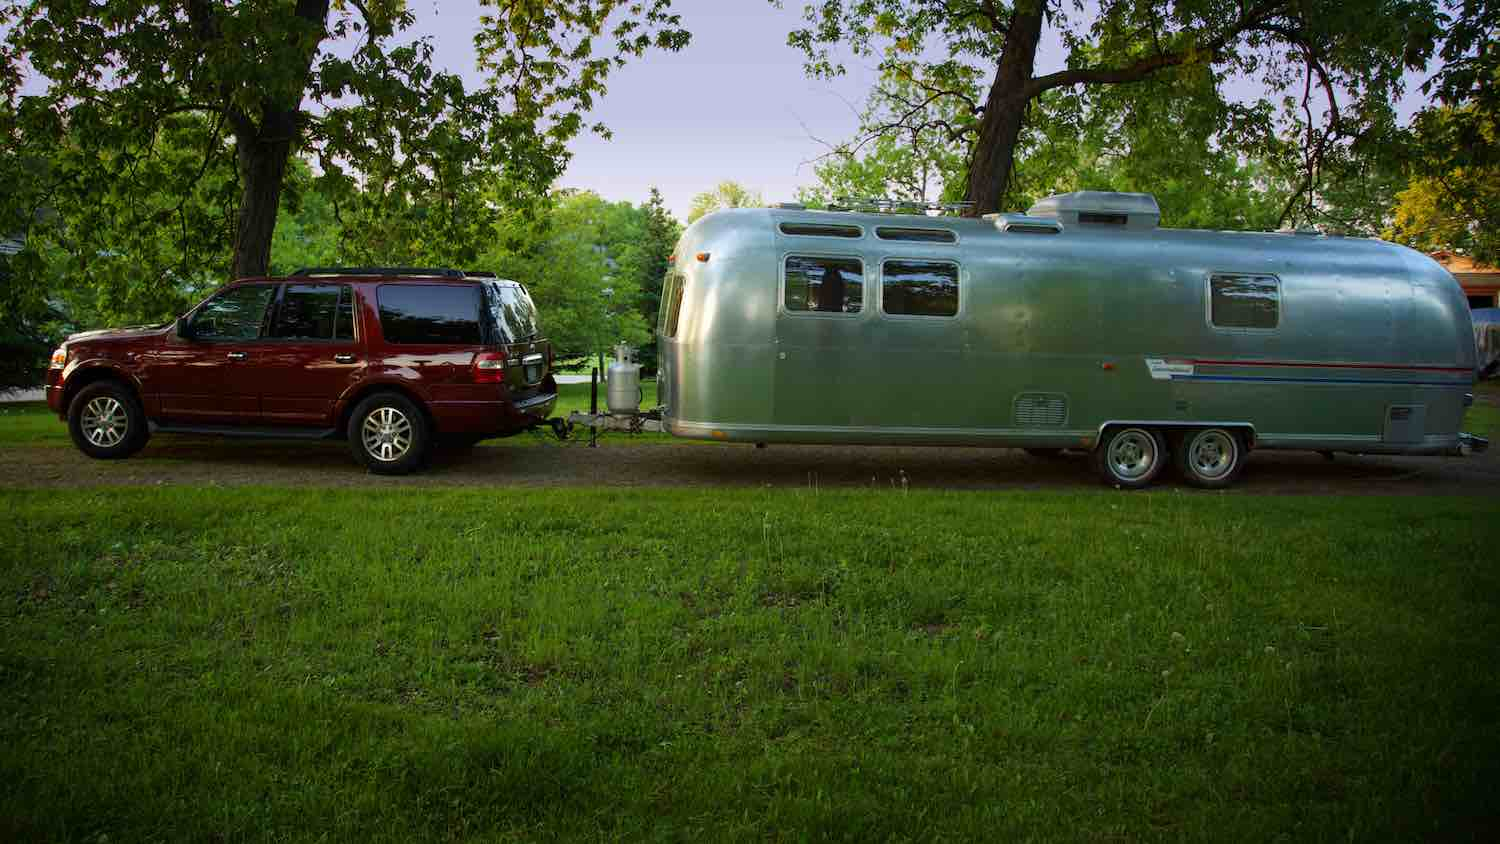 Time to camp with our Land Yacht Airstream Travel Trailer.